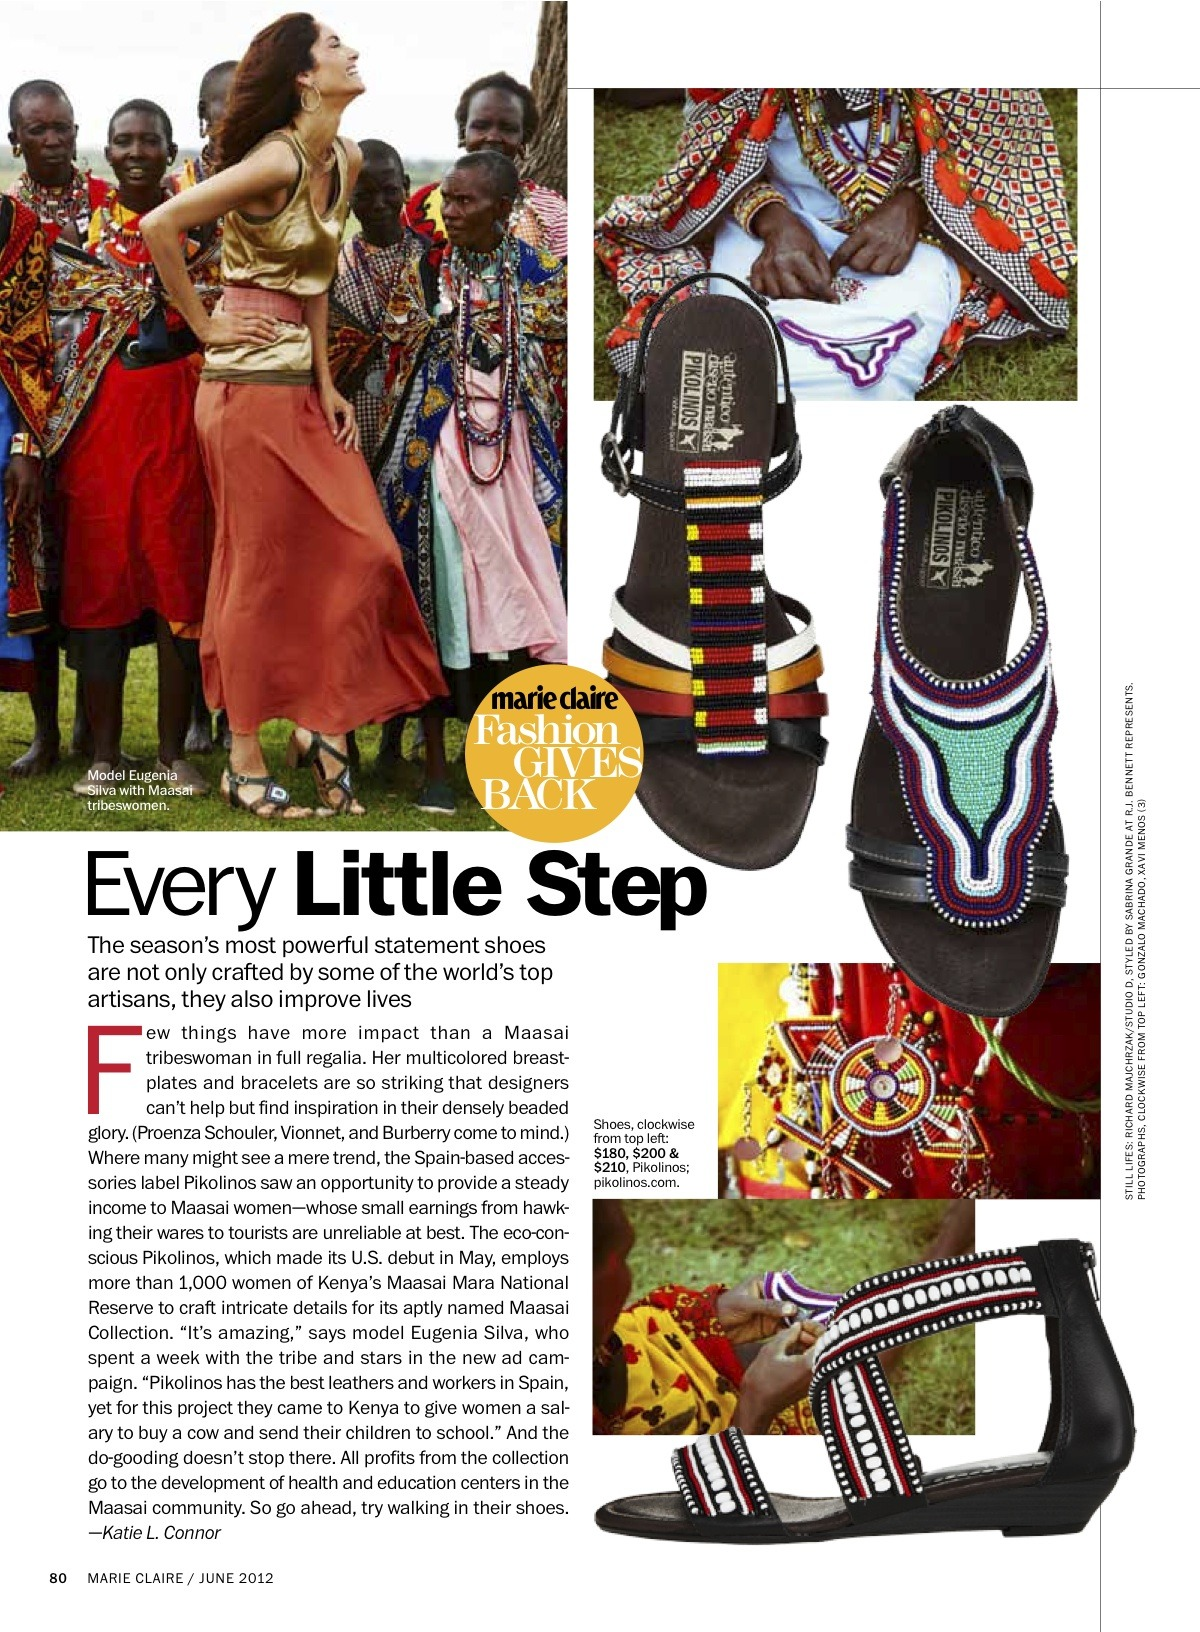 Marie Claire US - @pikolinos_shoes with Eugenia Silva in Kenya